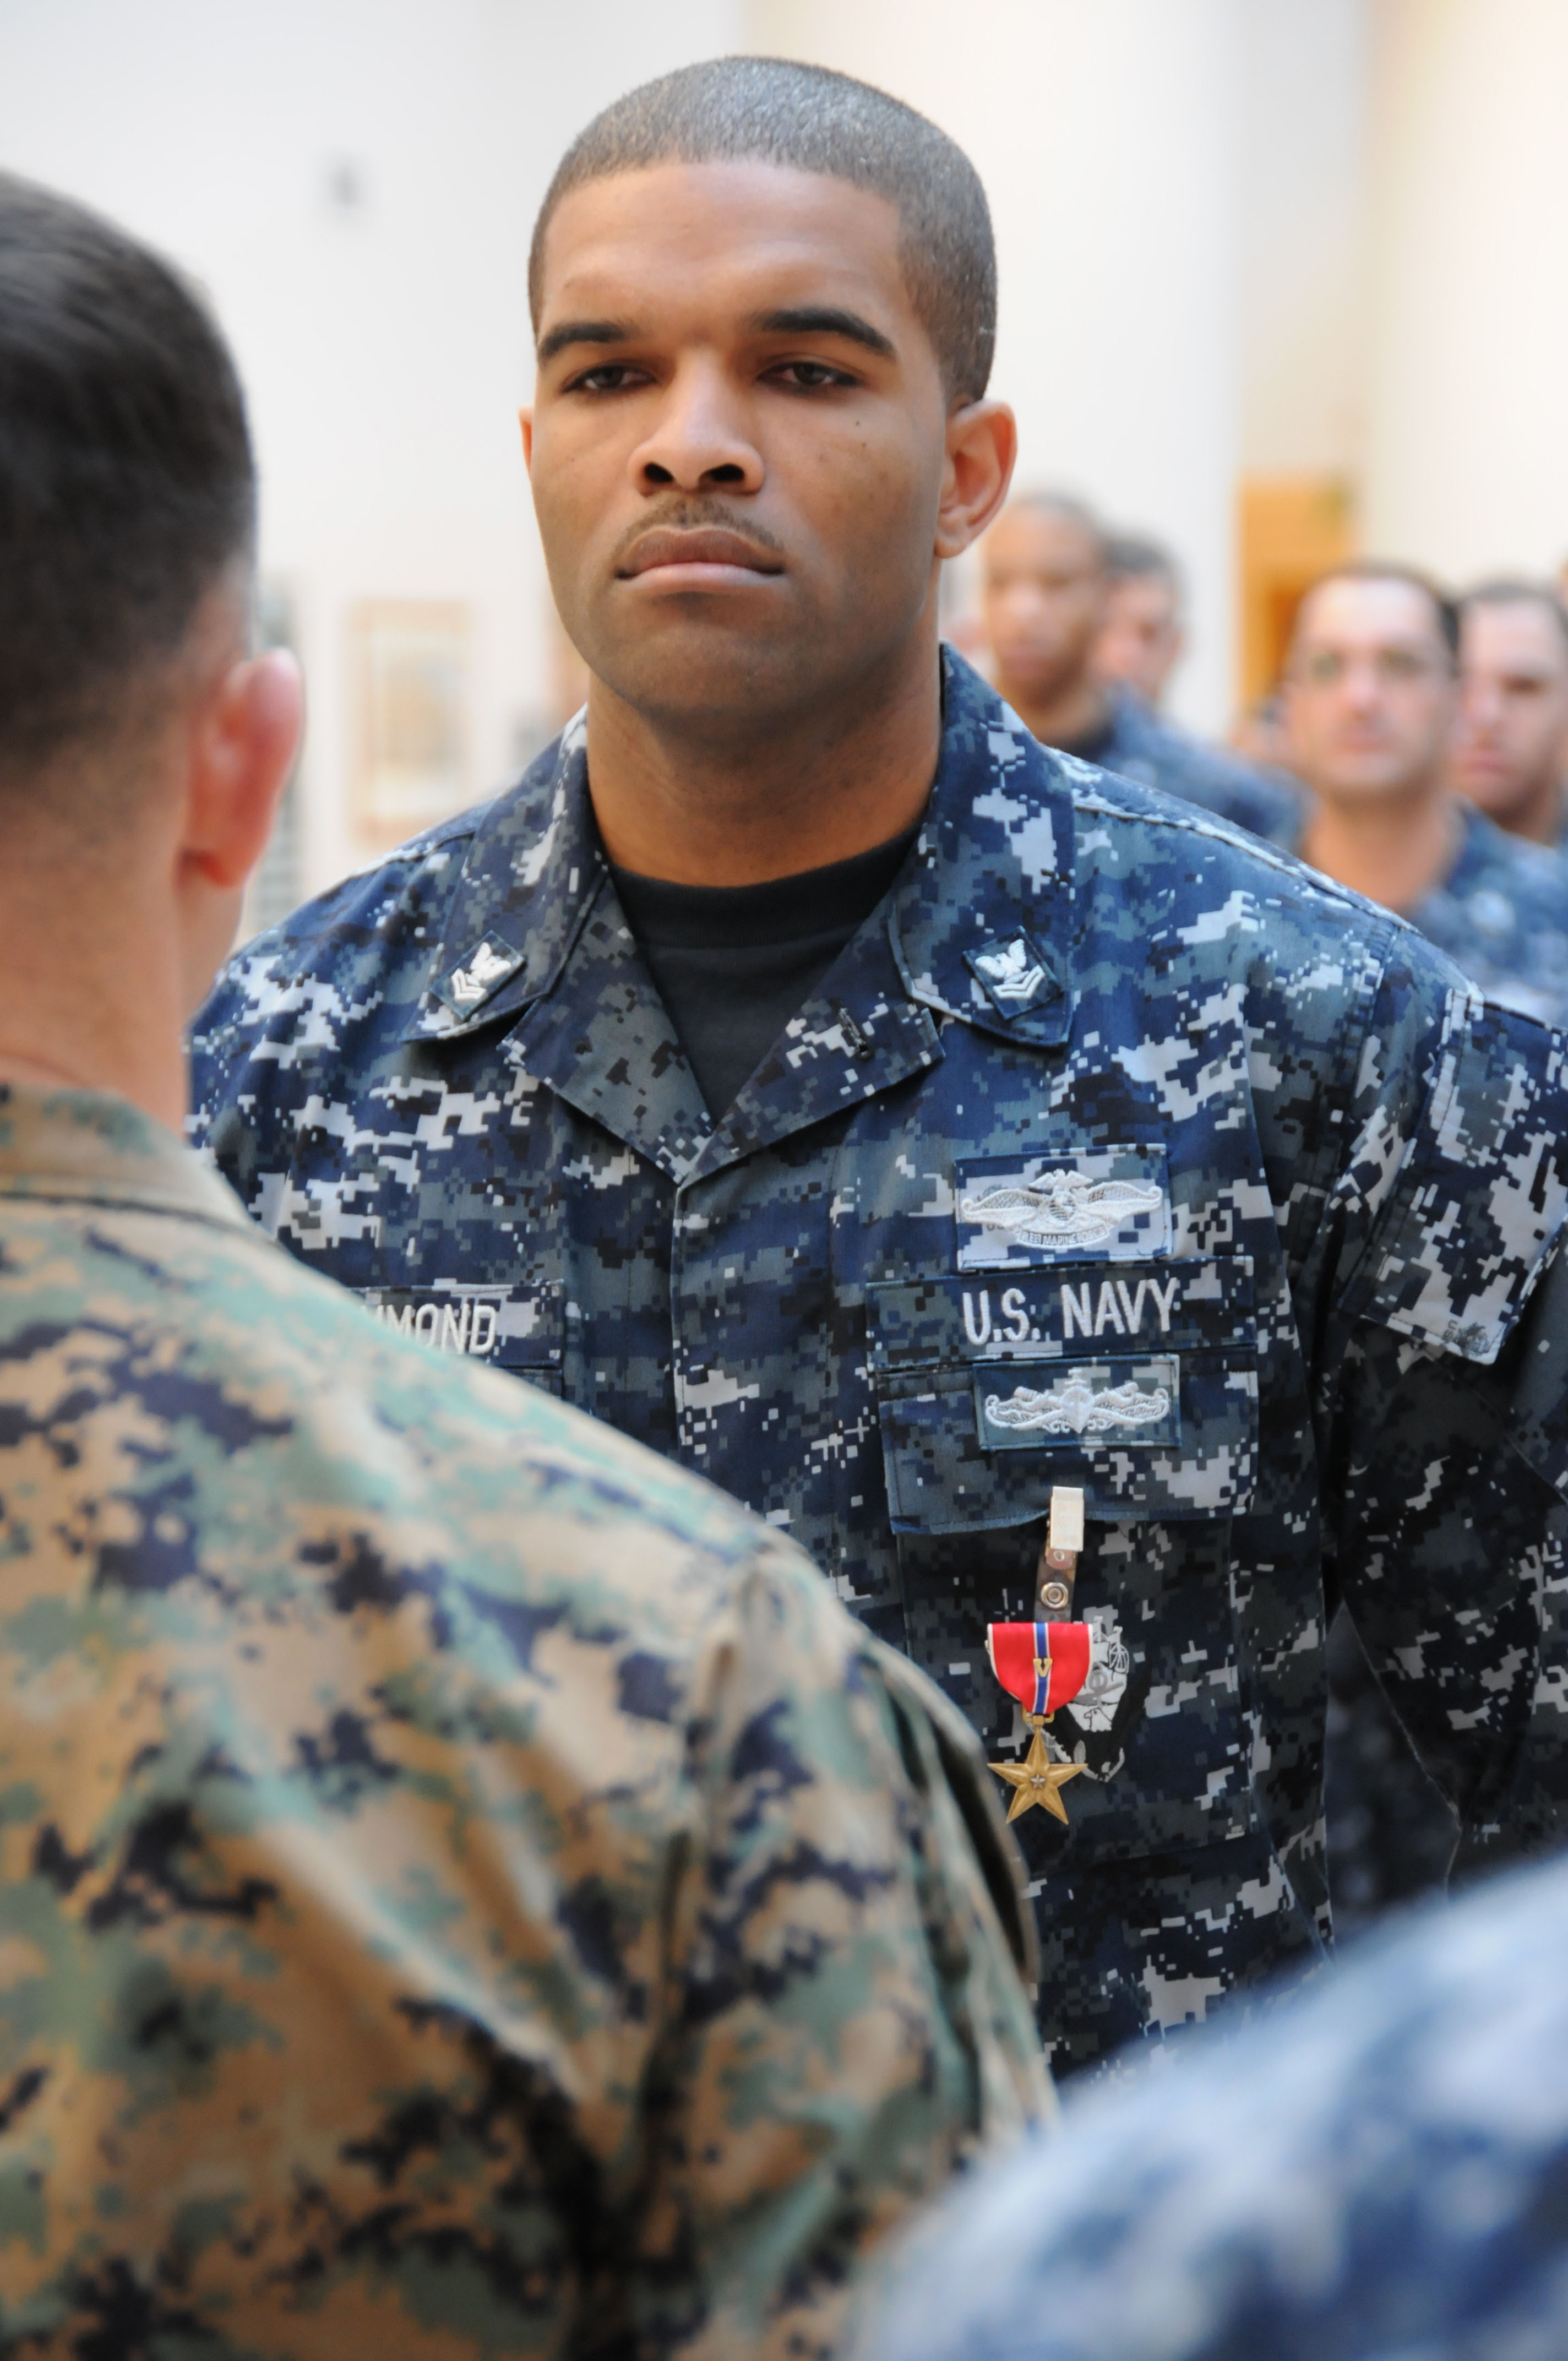 File:Flickr - Official U.S. Navy Imagery - Navy medic receives the ...